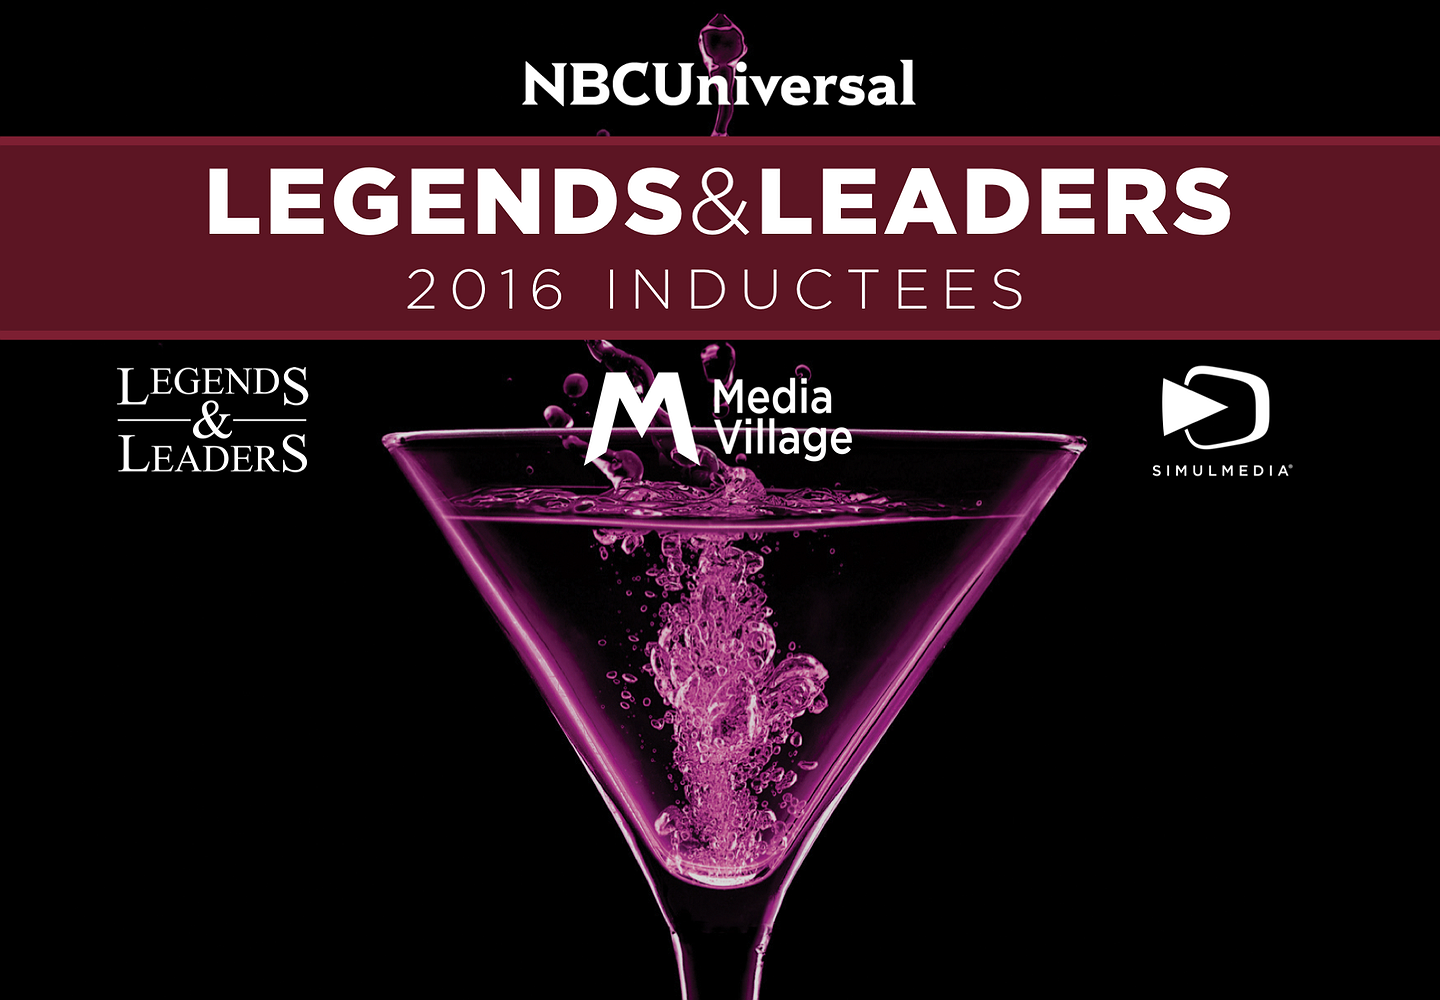 Introducing the 2016 Legends & Leaders Inductees